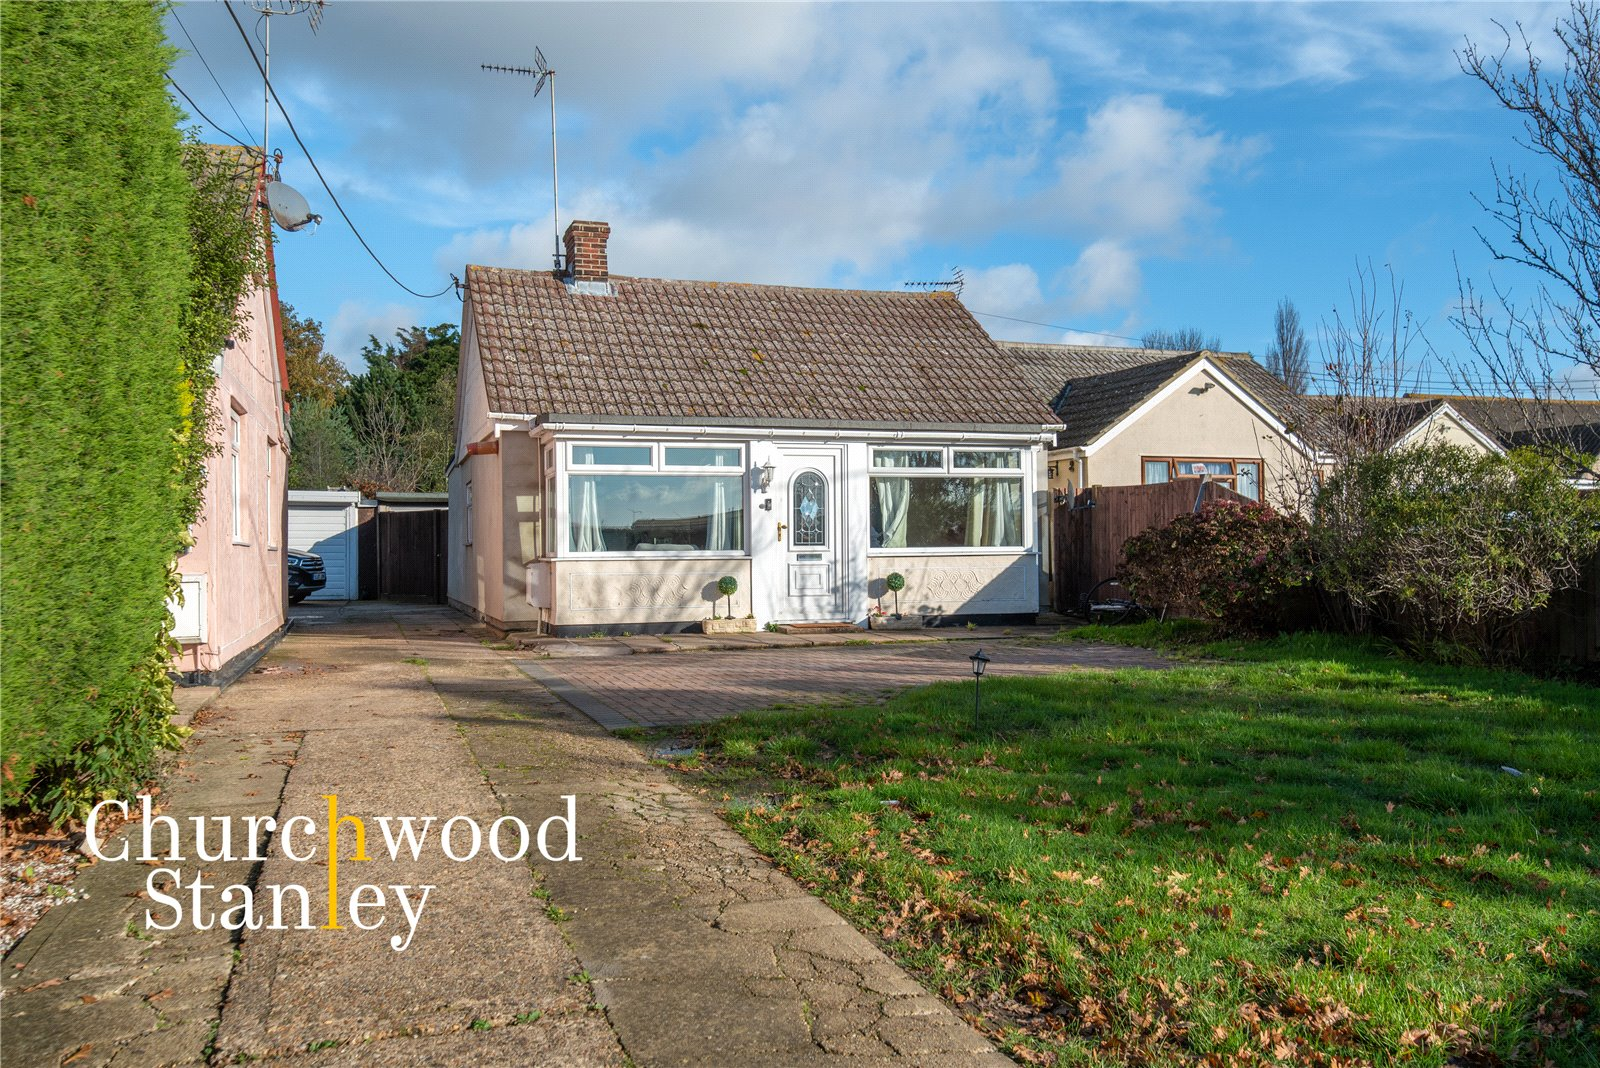 2 bed bungalow for sale in Frinton Road, Thorpe-le-Soken, Clacton-on-Sea, CO16